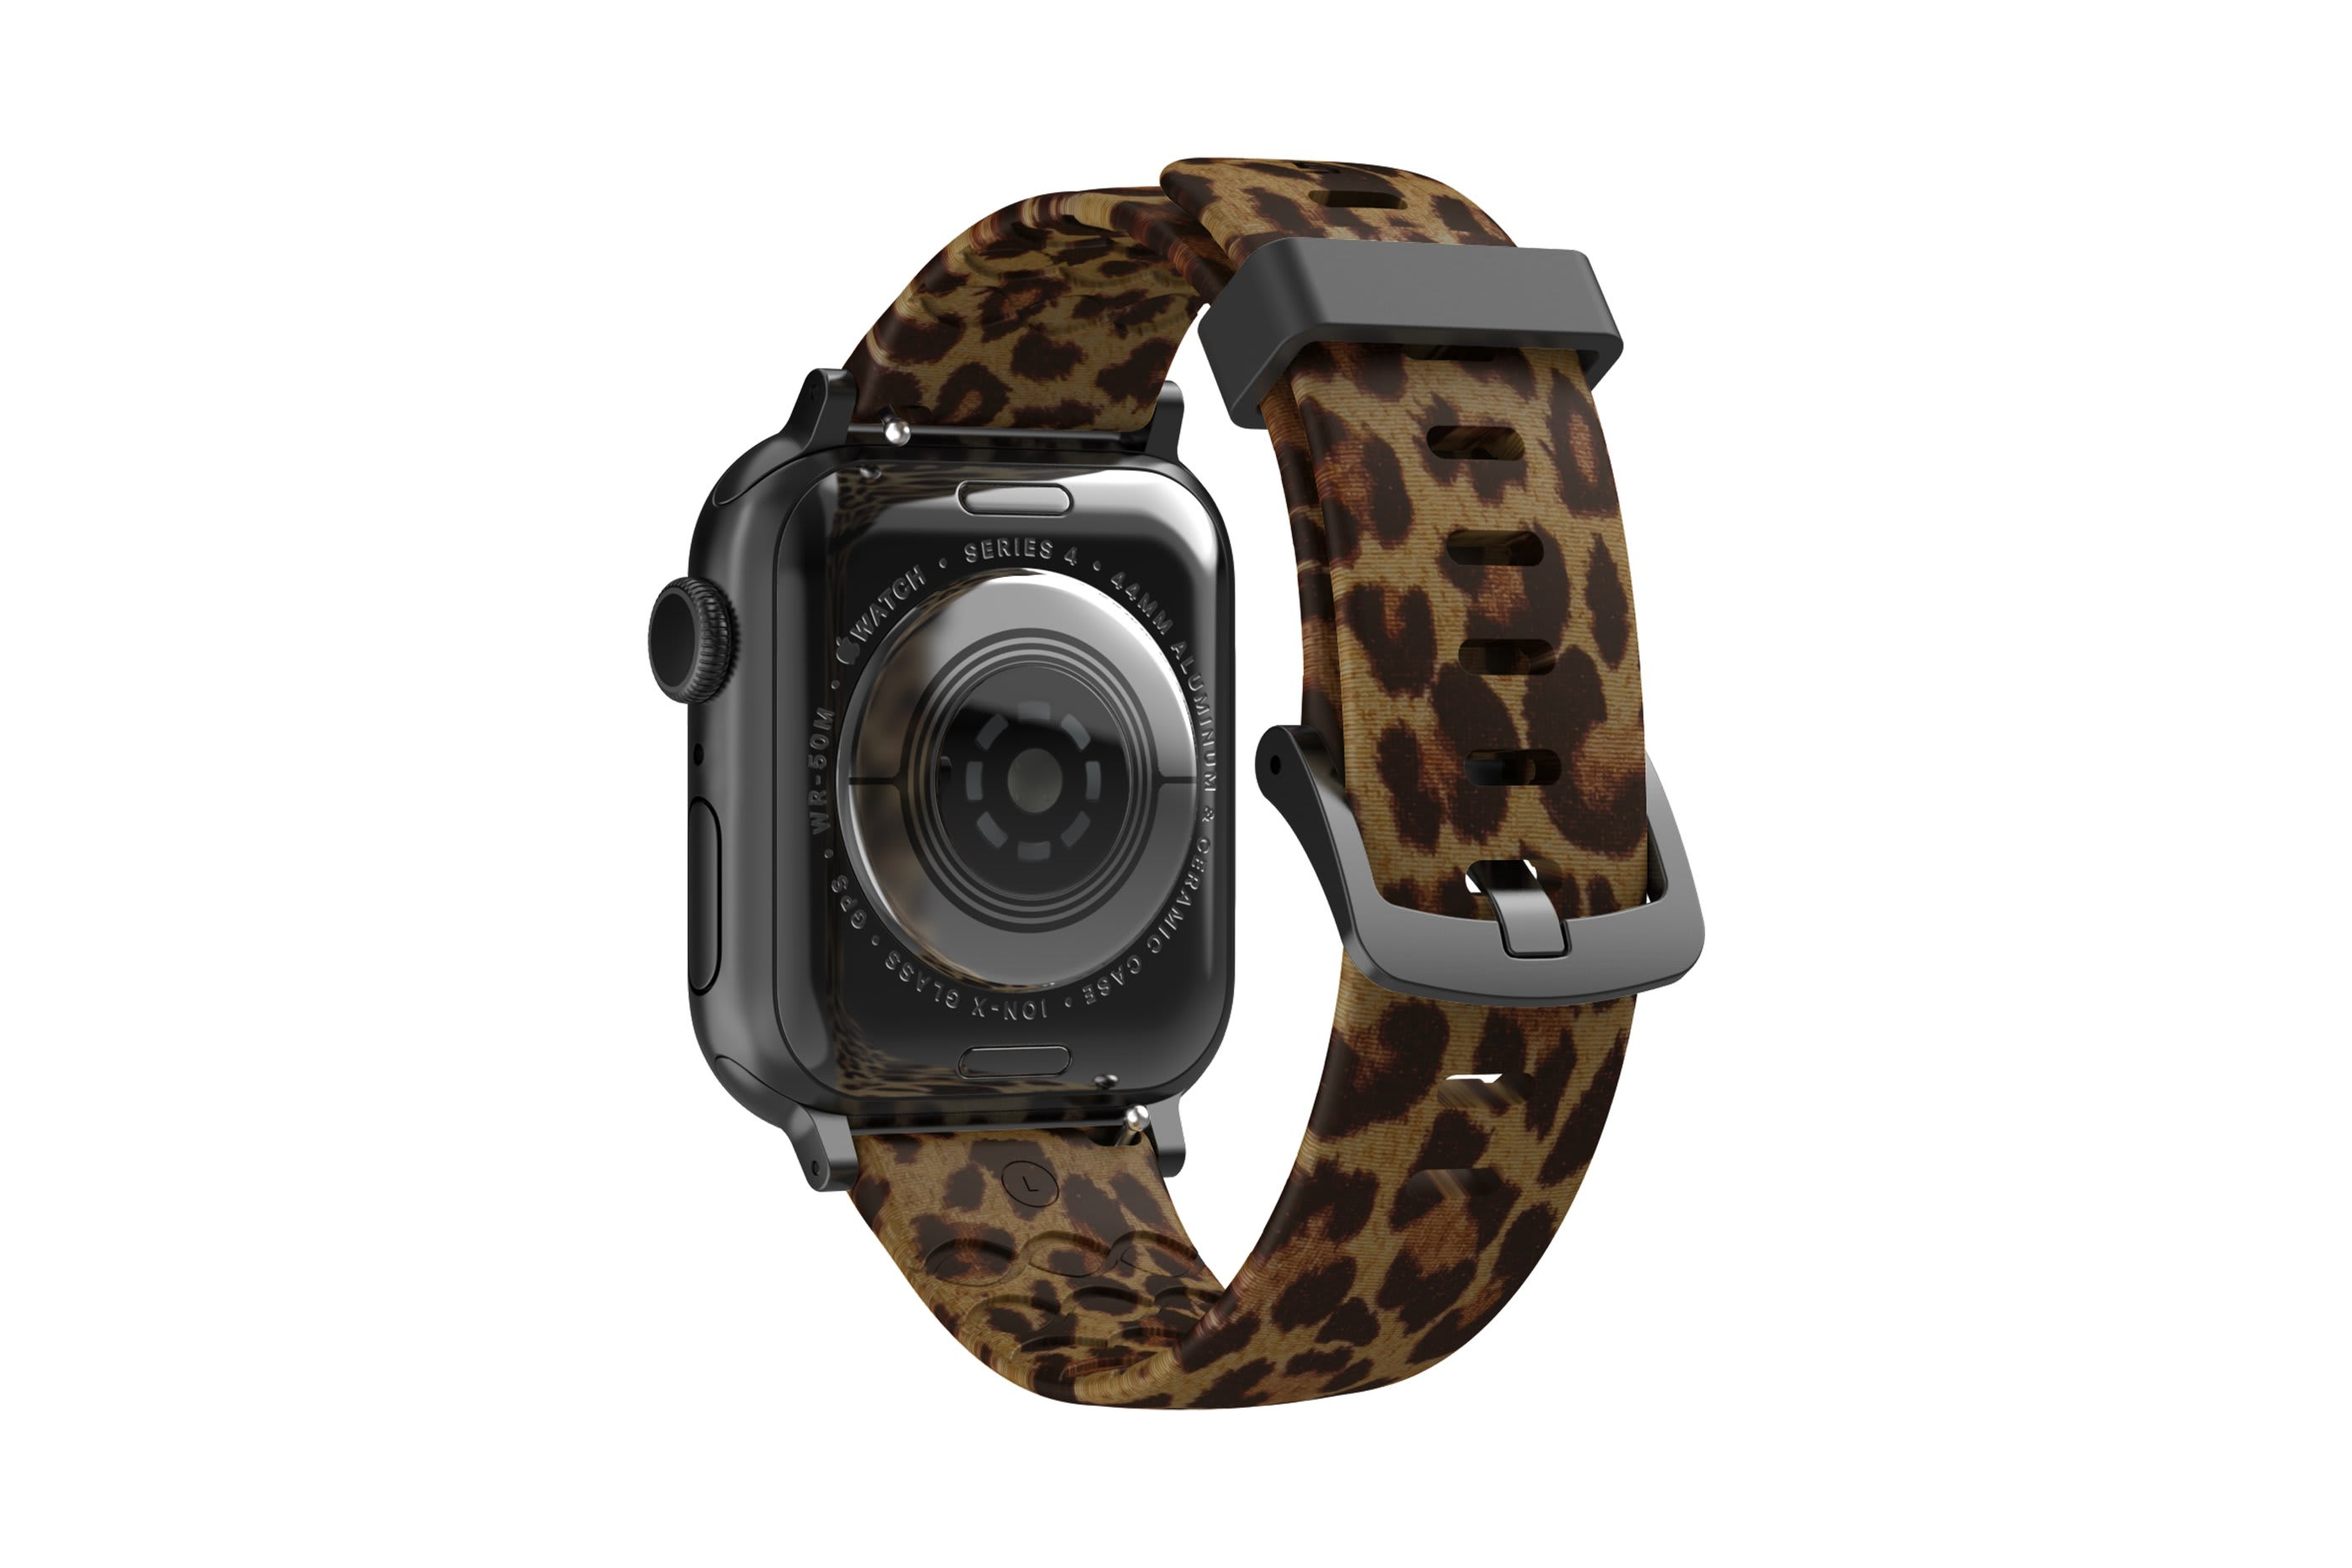 Leopard Apple Watch Band with gray hardware viewed from rear